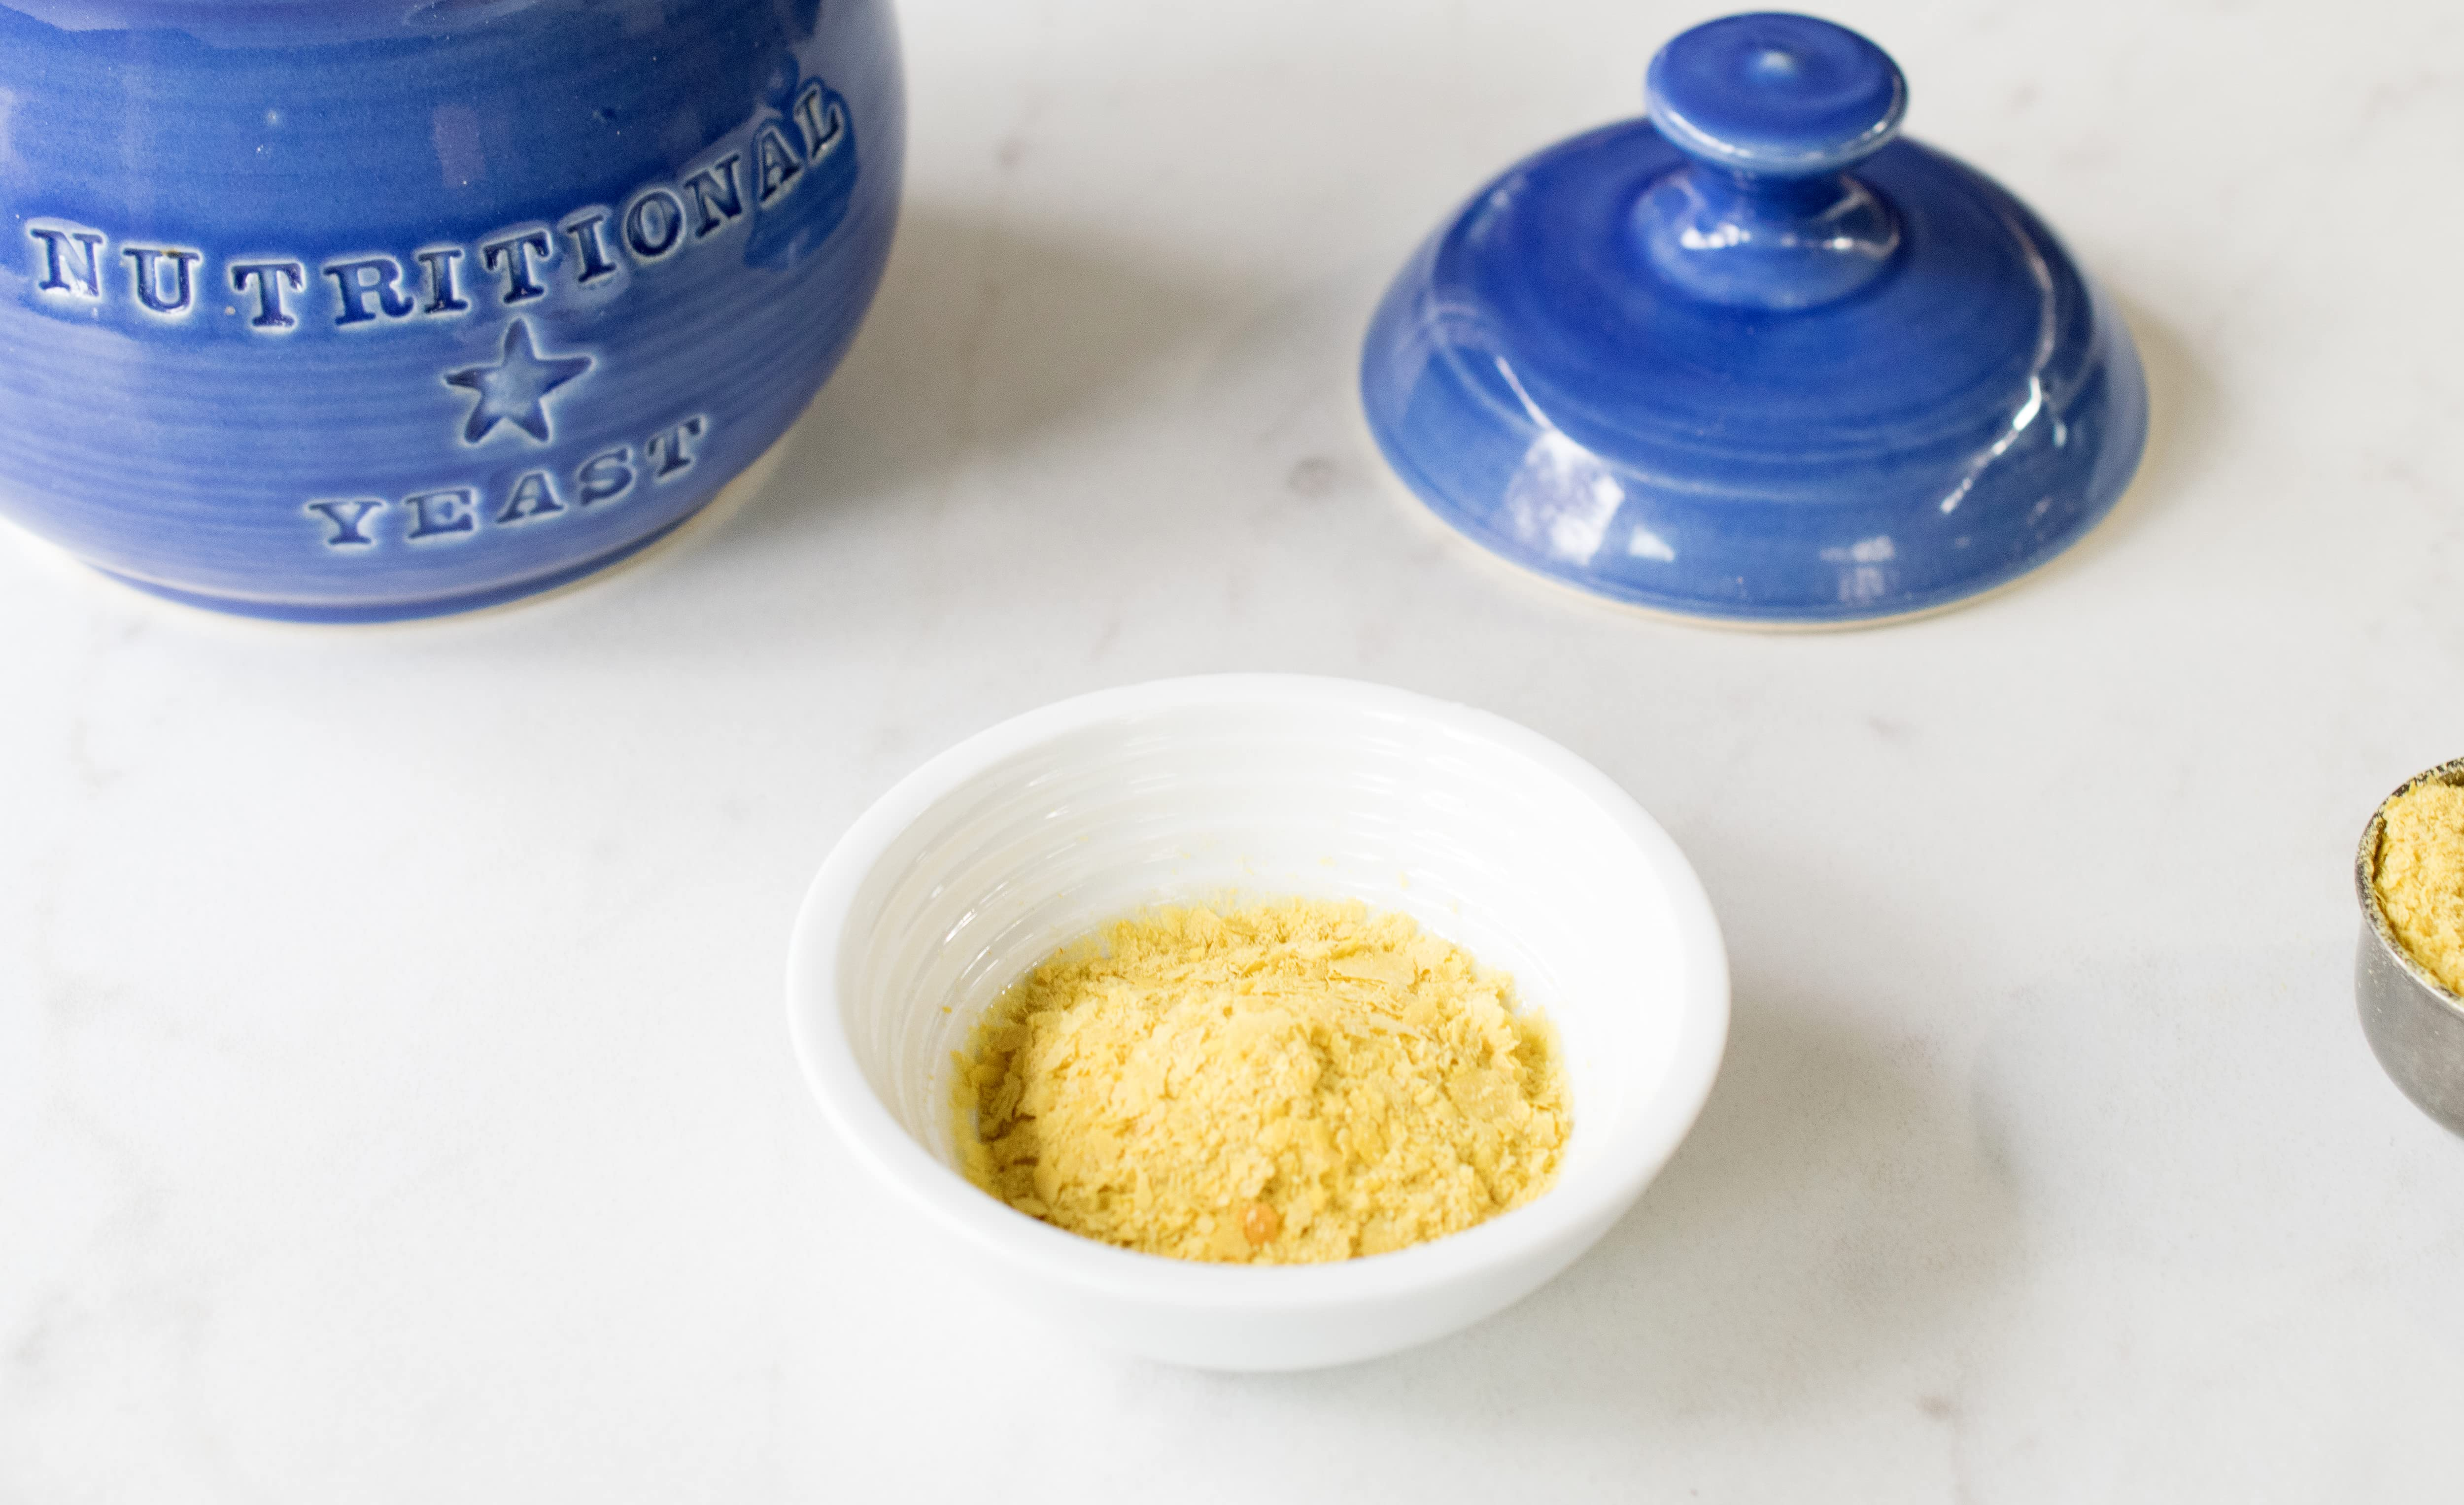 nutritional yeast in bowl